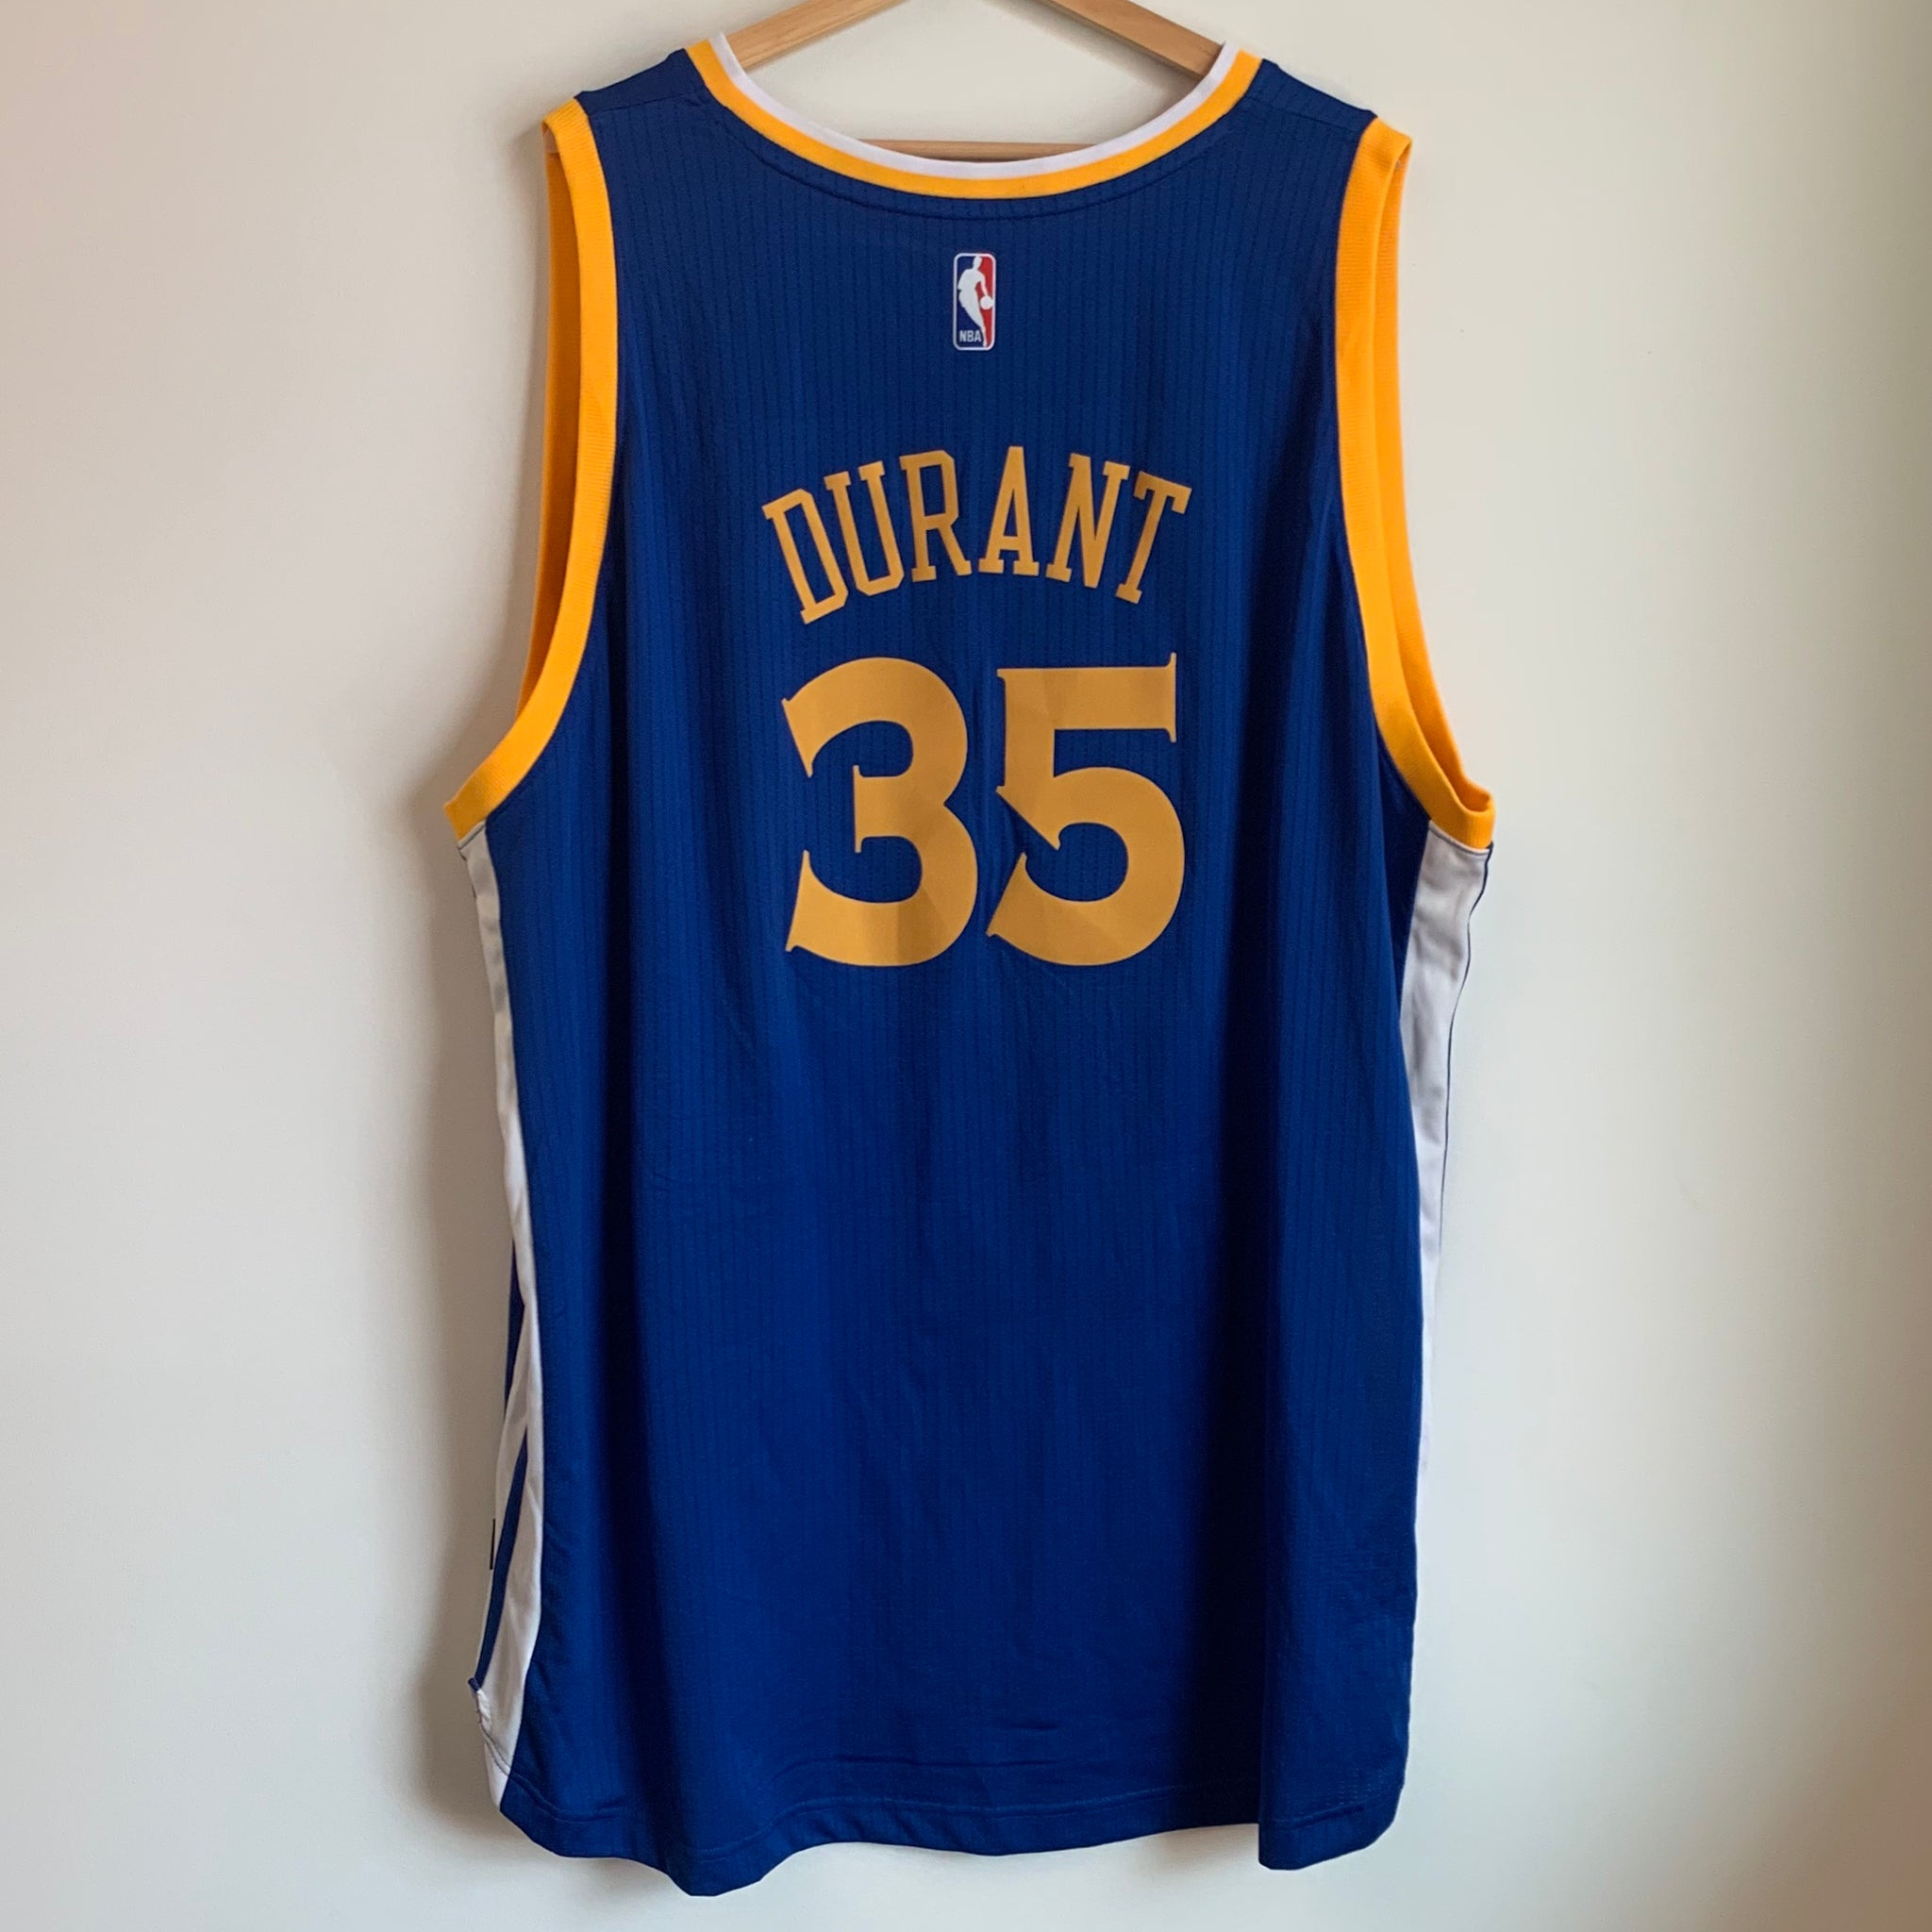 on sale ce0d2 5efc9 Adidas Kevin Durant Golden State Warriors Blue Basketball ...